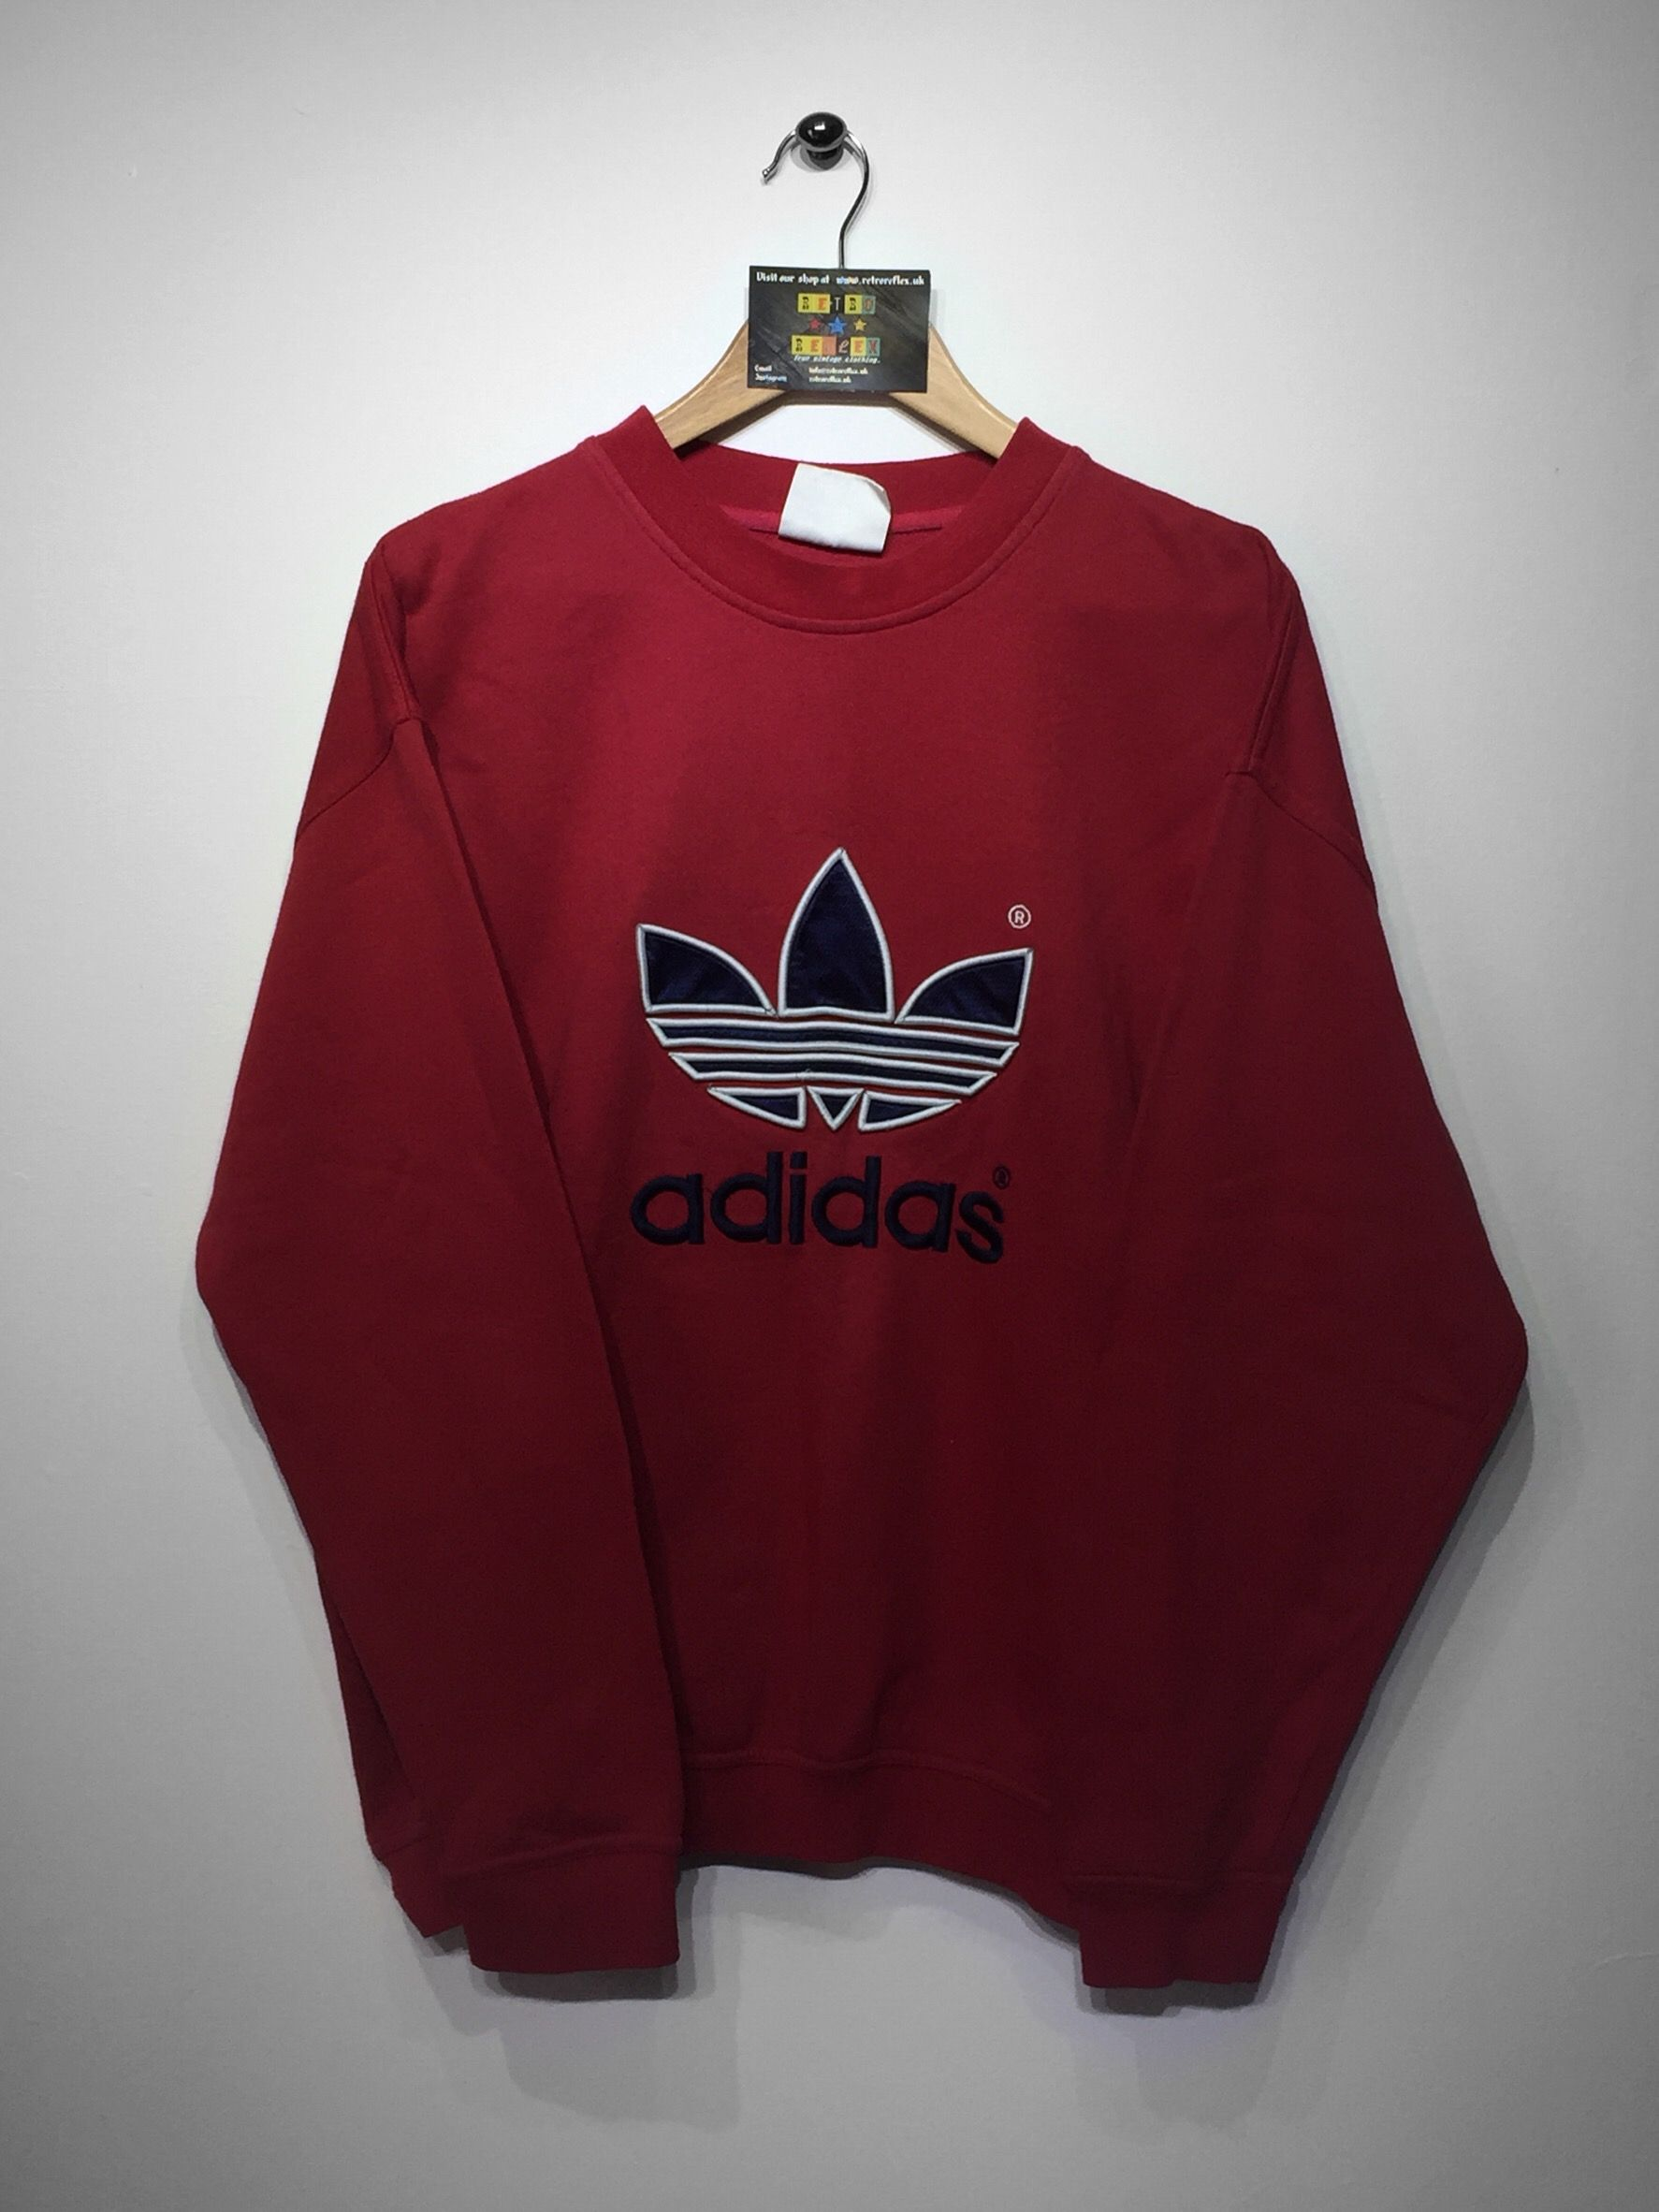 Adidas sweatshirt Size XLarge (but Fits Oversized) £36